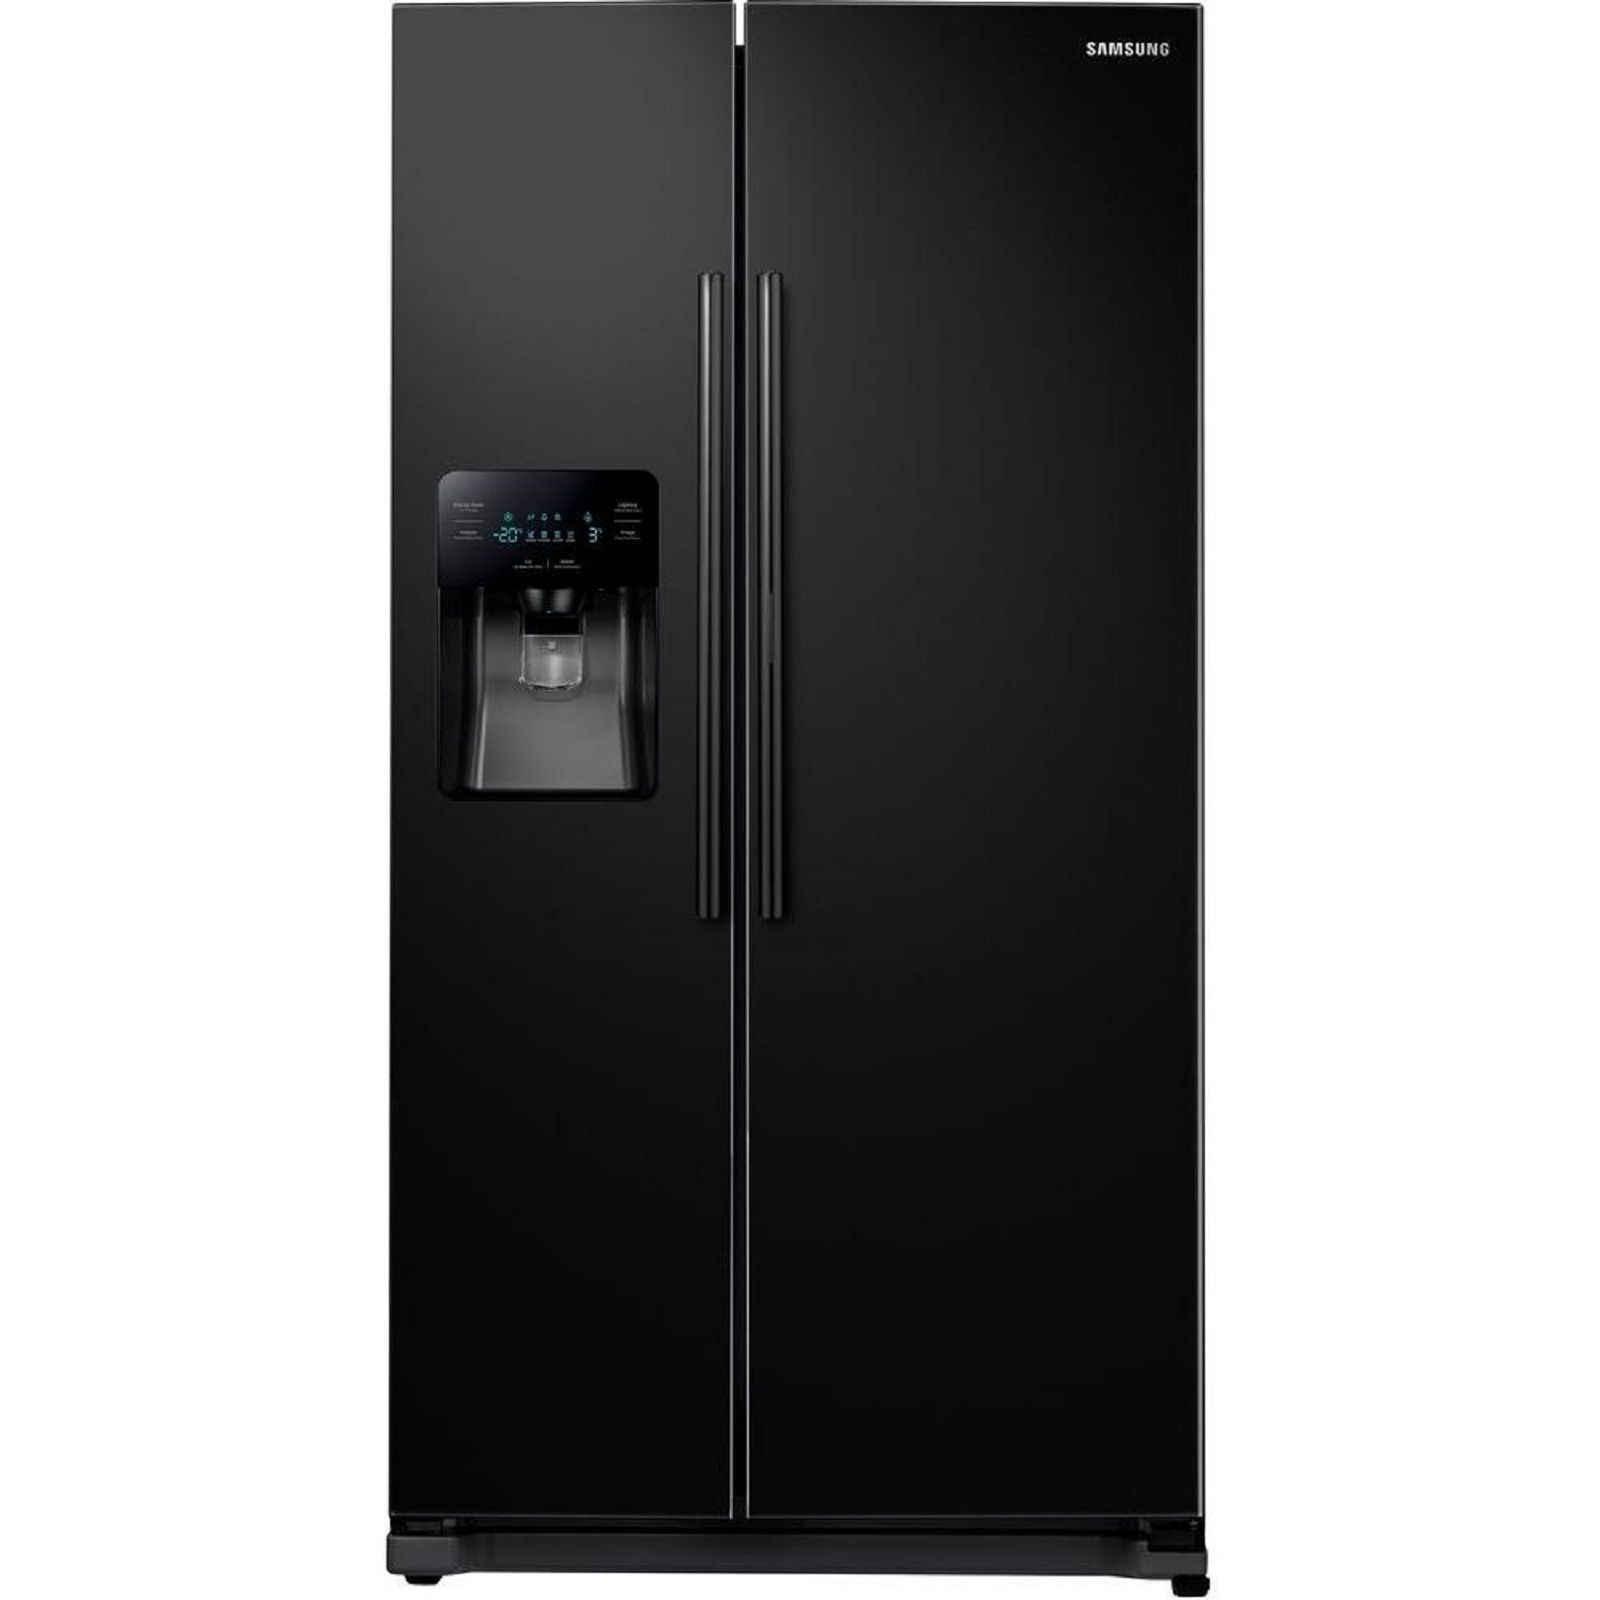 Samsung - RH25H5611BC - Samsung 24.7 cu. ft. Side by Side ...